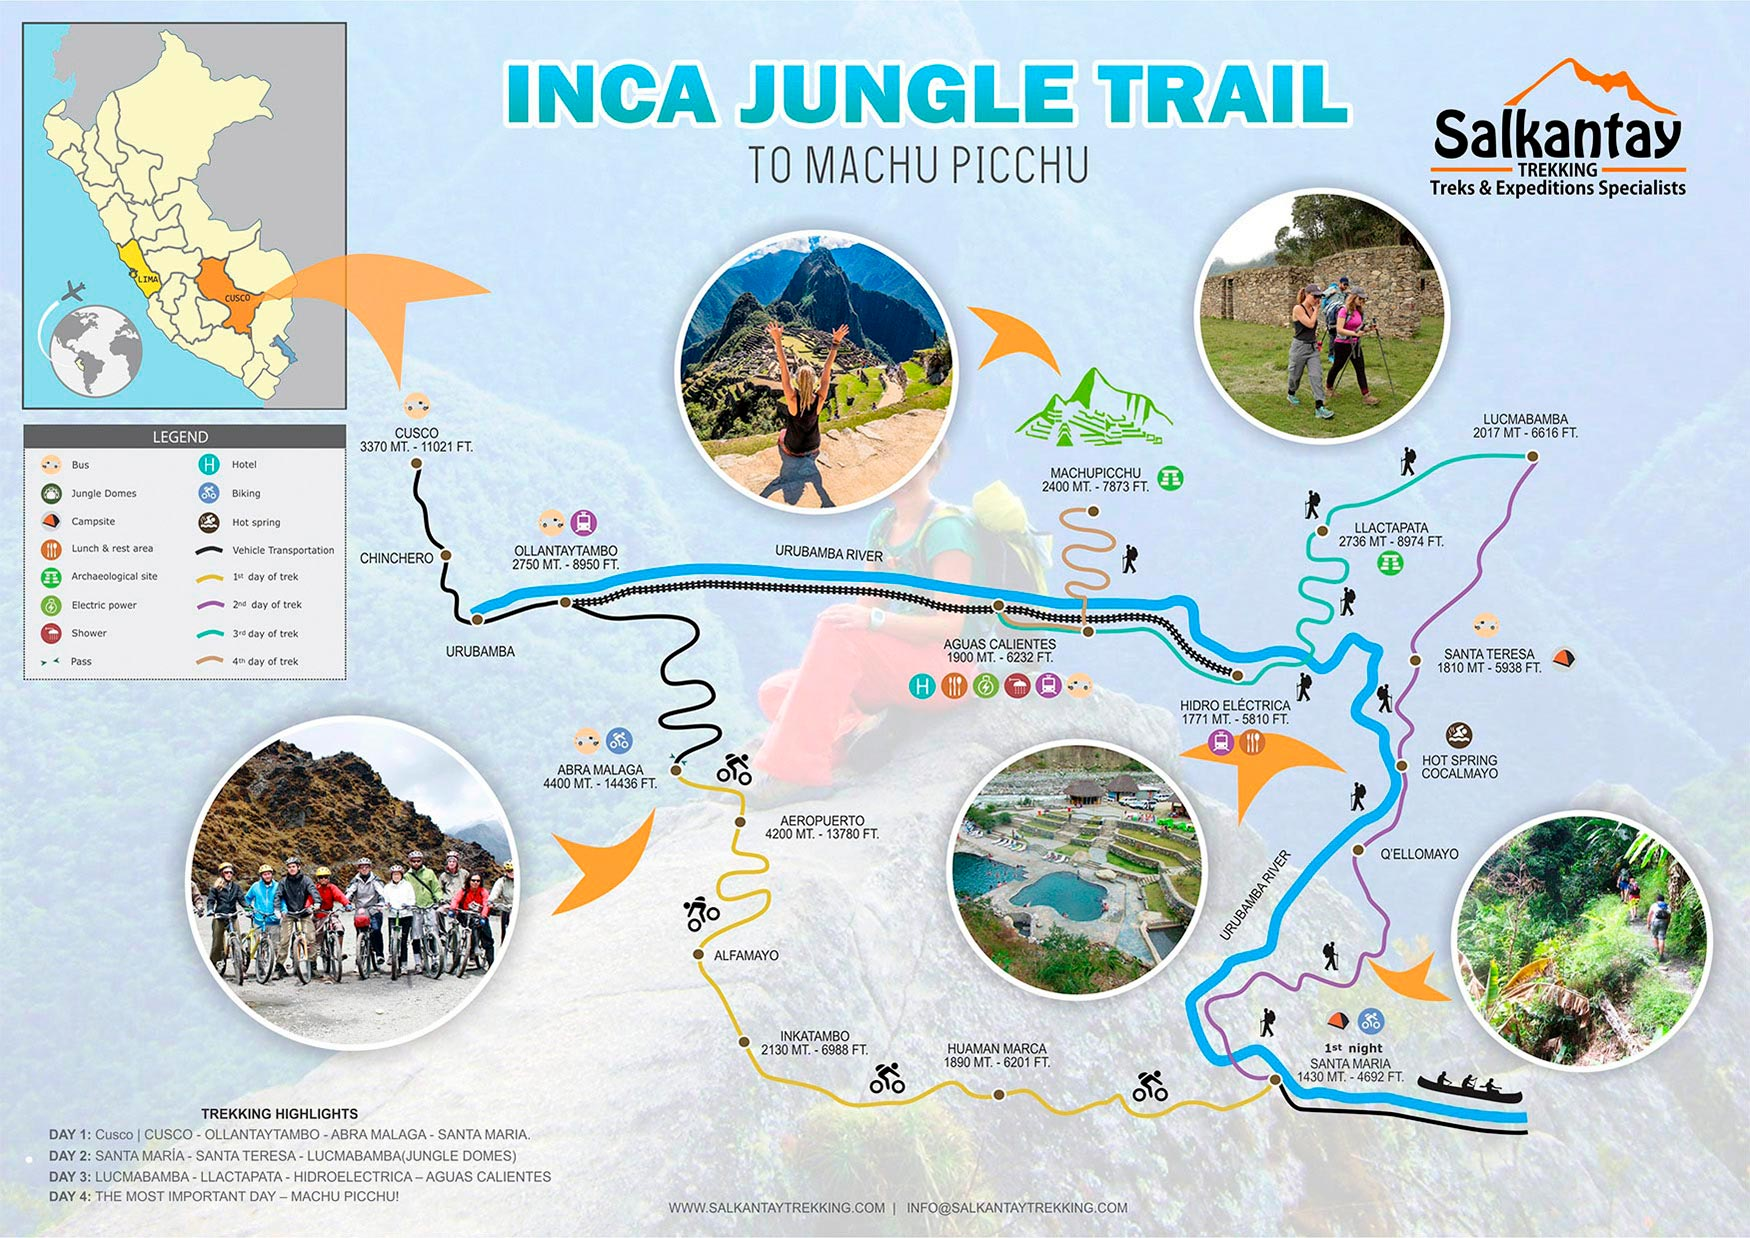 Mapa del camino Inca Jungle a Machu Picchu